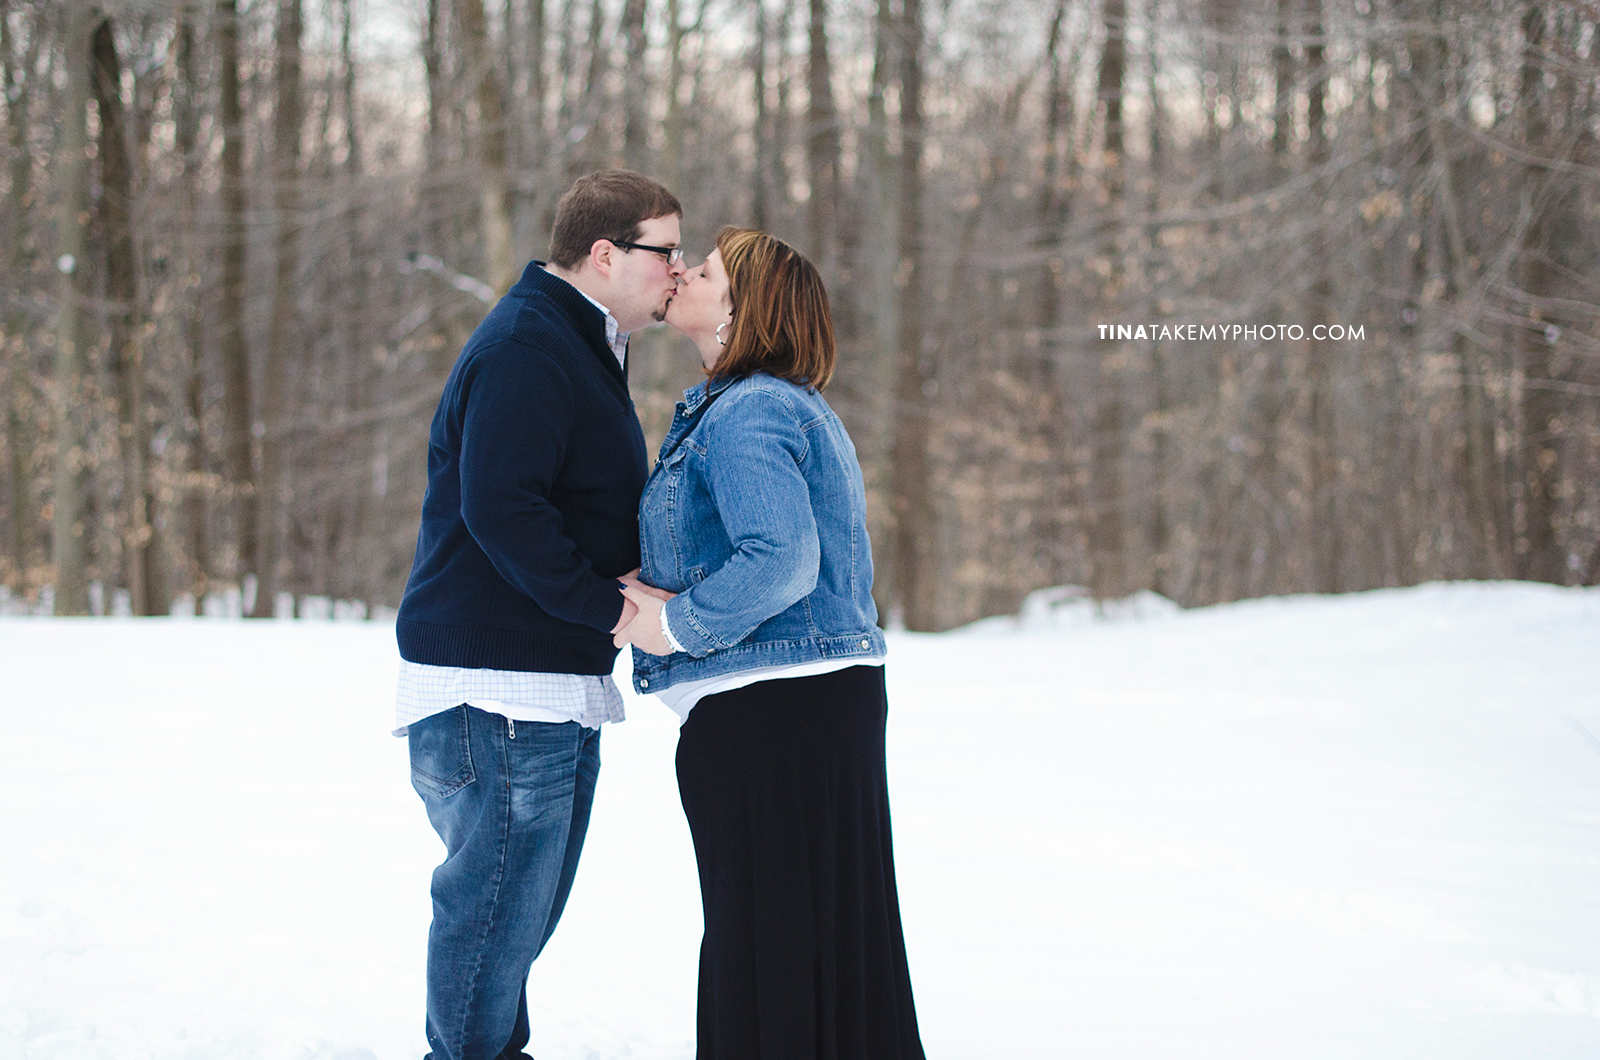 Have-De-Grace-Maternity-Maryland-Winter-Snow-Baby-Bump-Photographer-MD-VA (13)